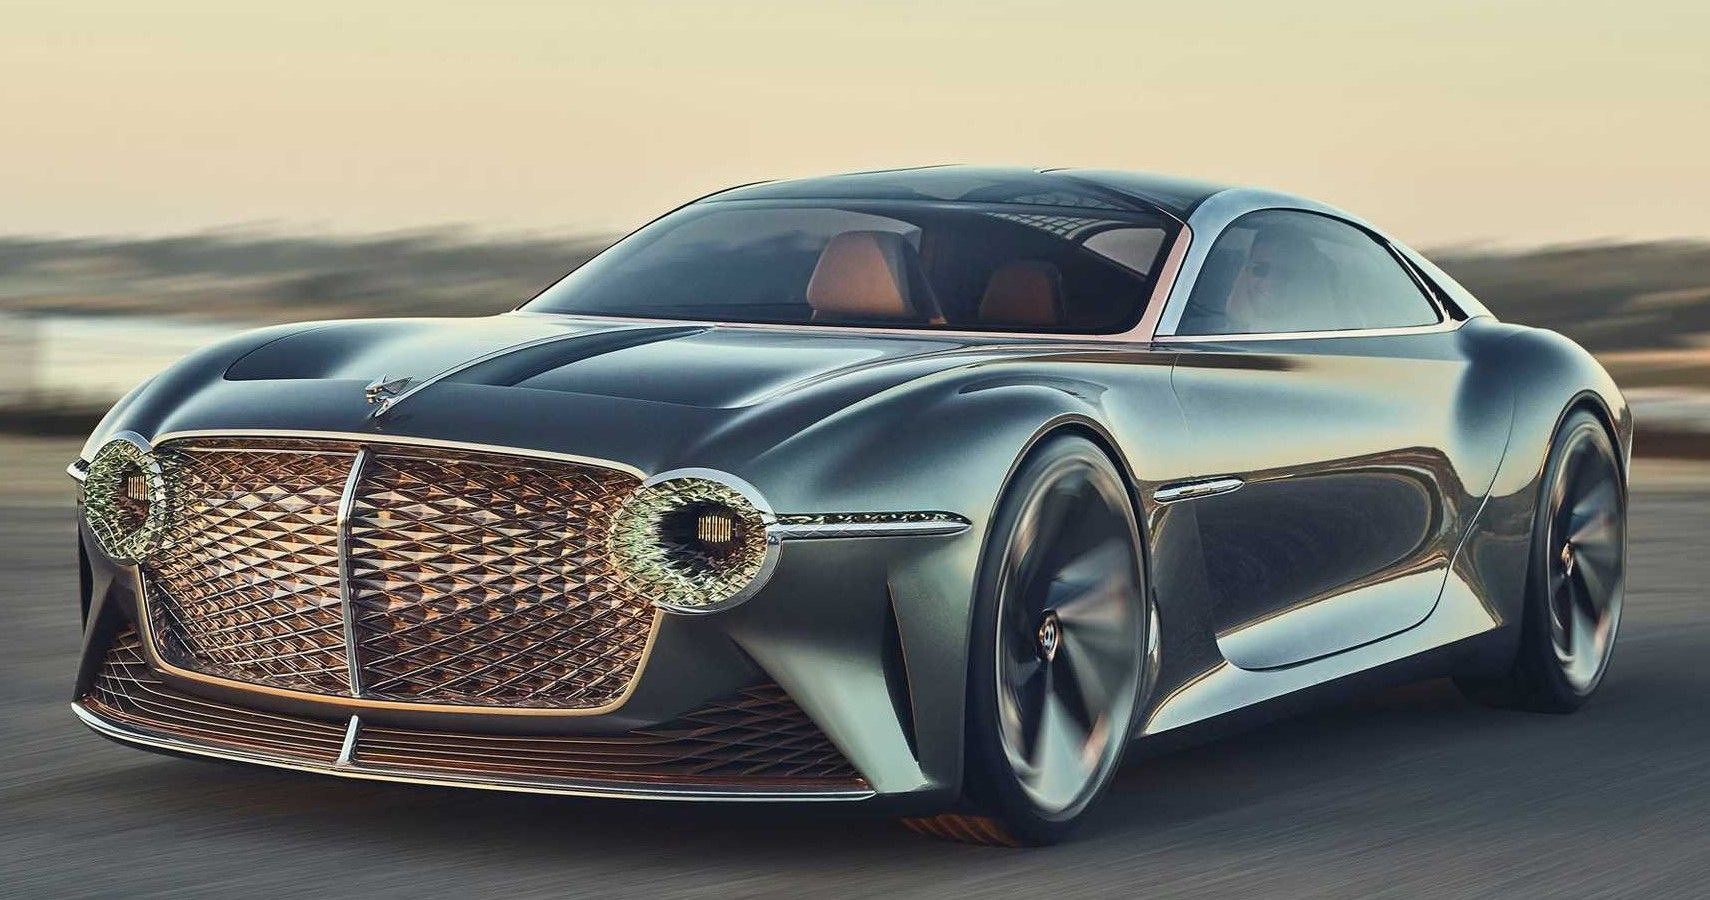 The Bentley EXP 100 GT Concept Gives Us A Peak At 2035 | HotCars